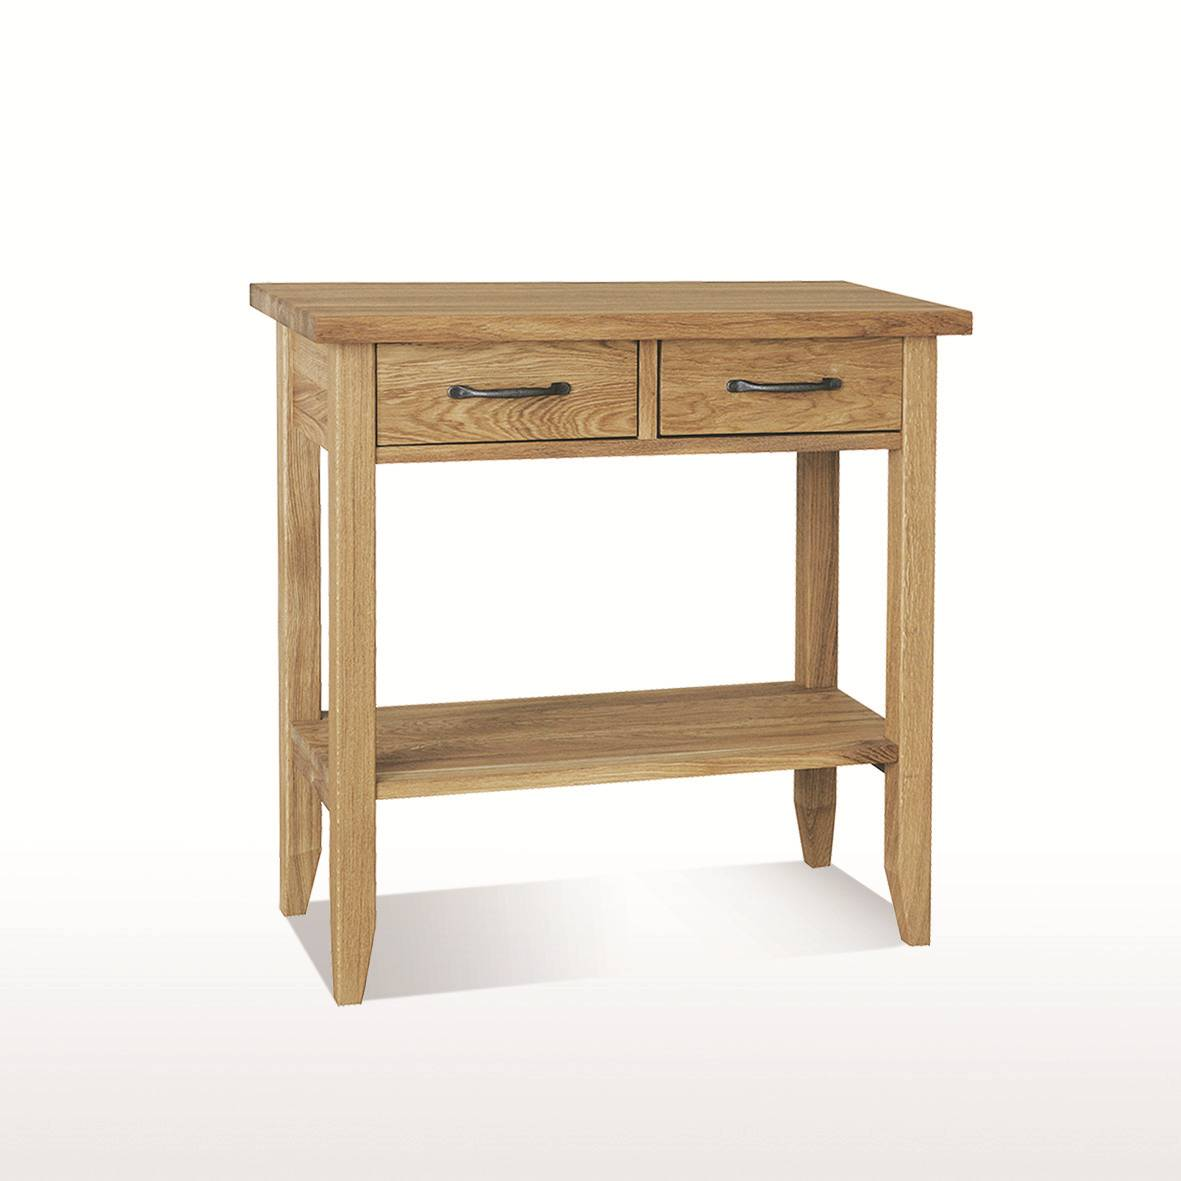 Dining Table Console Windsor Dining Console Table 2 Drawers With Shelf